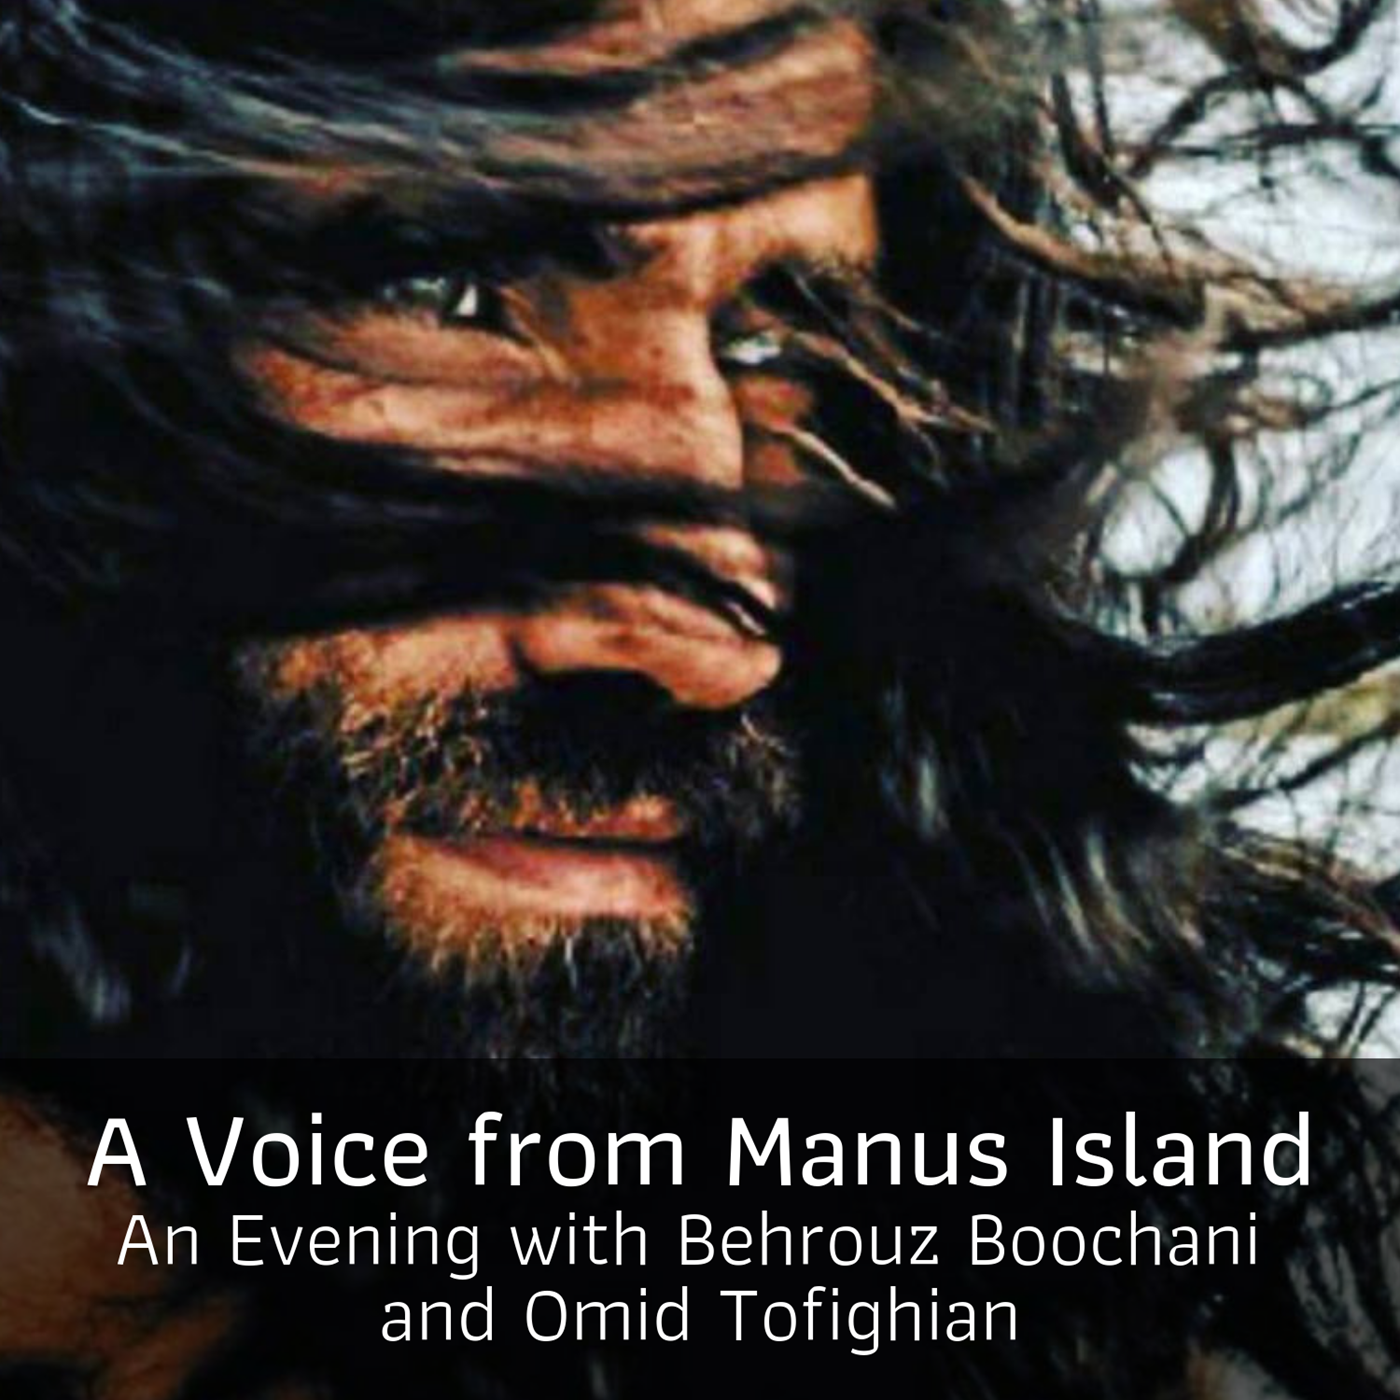 A Voice from Manus Island